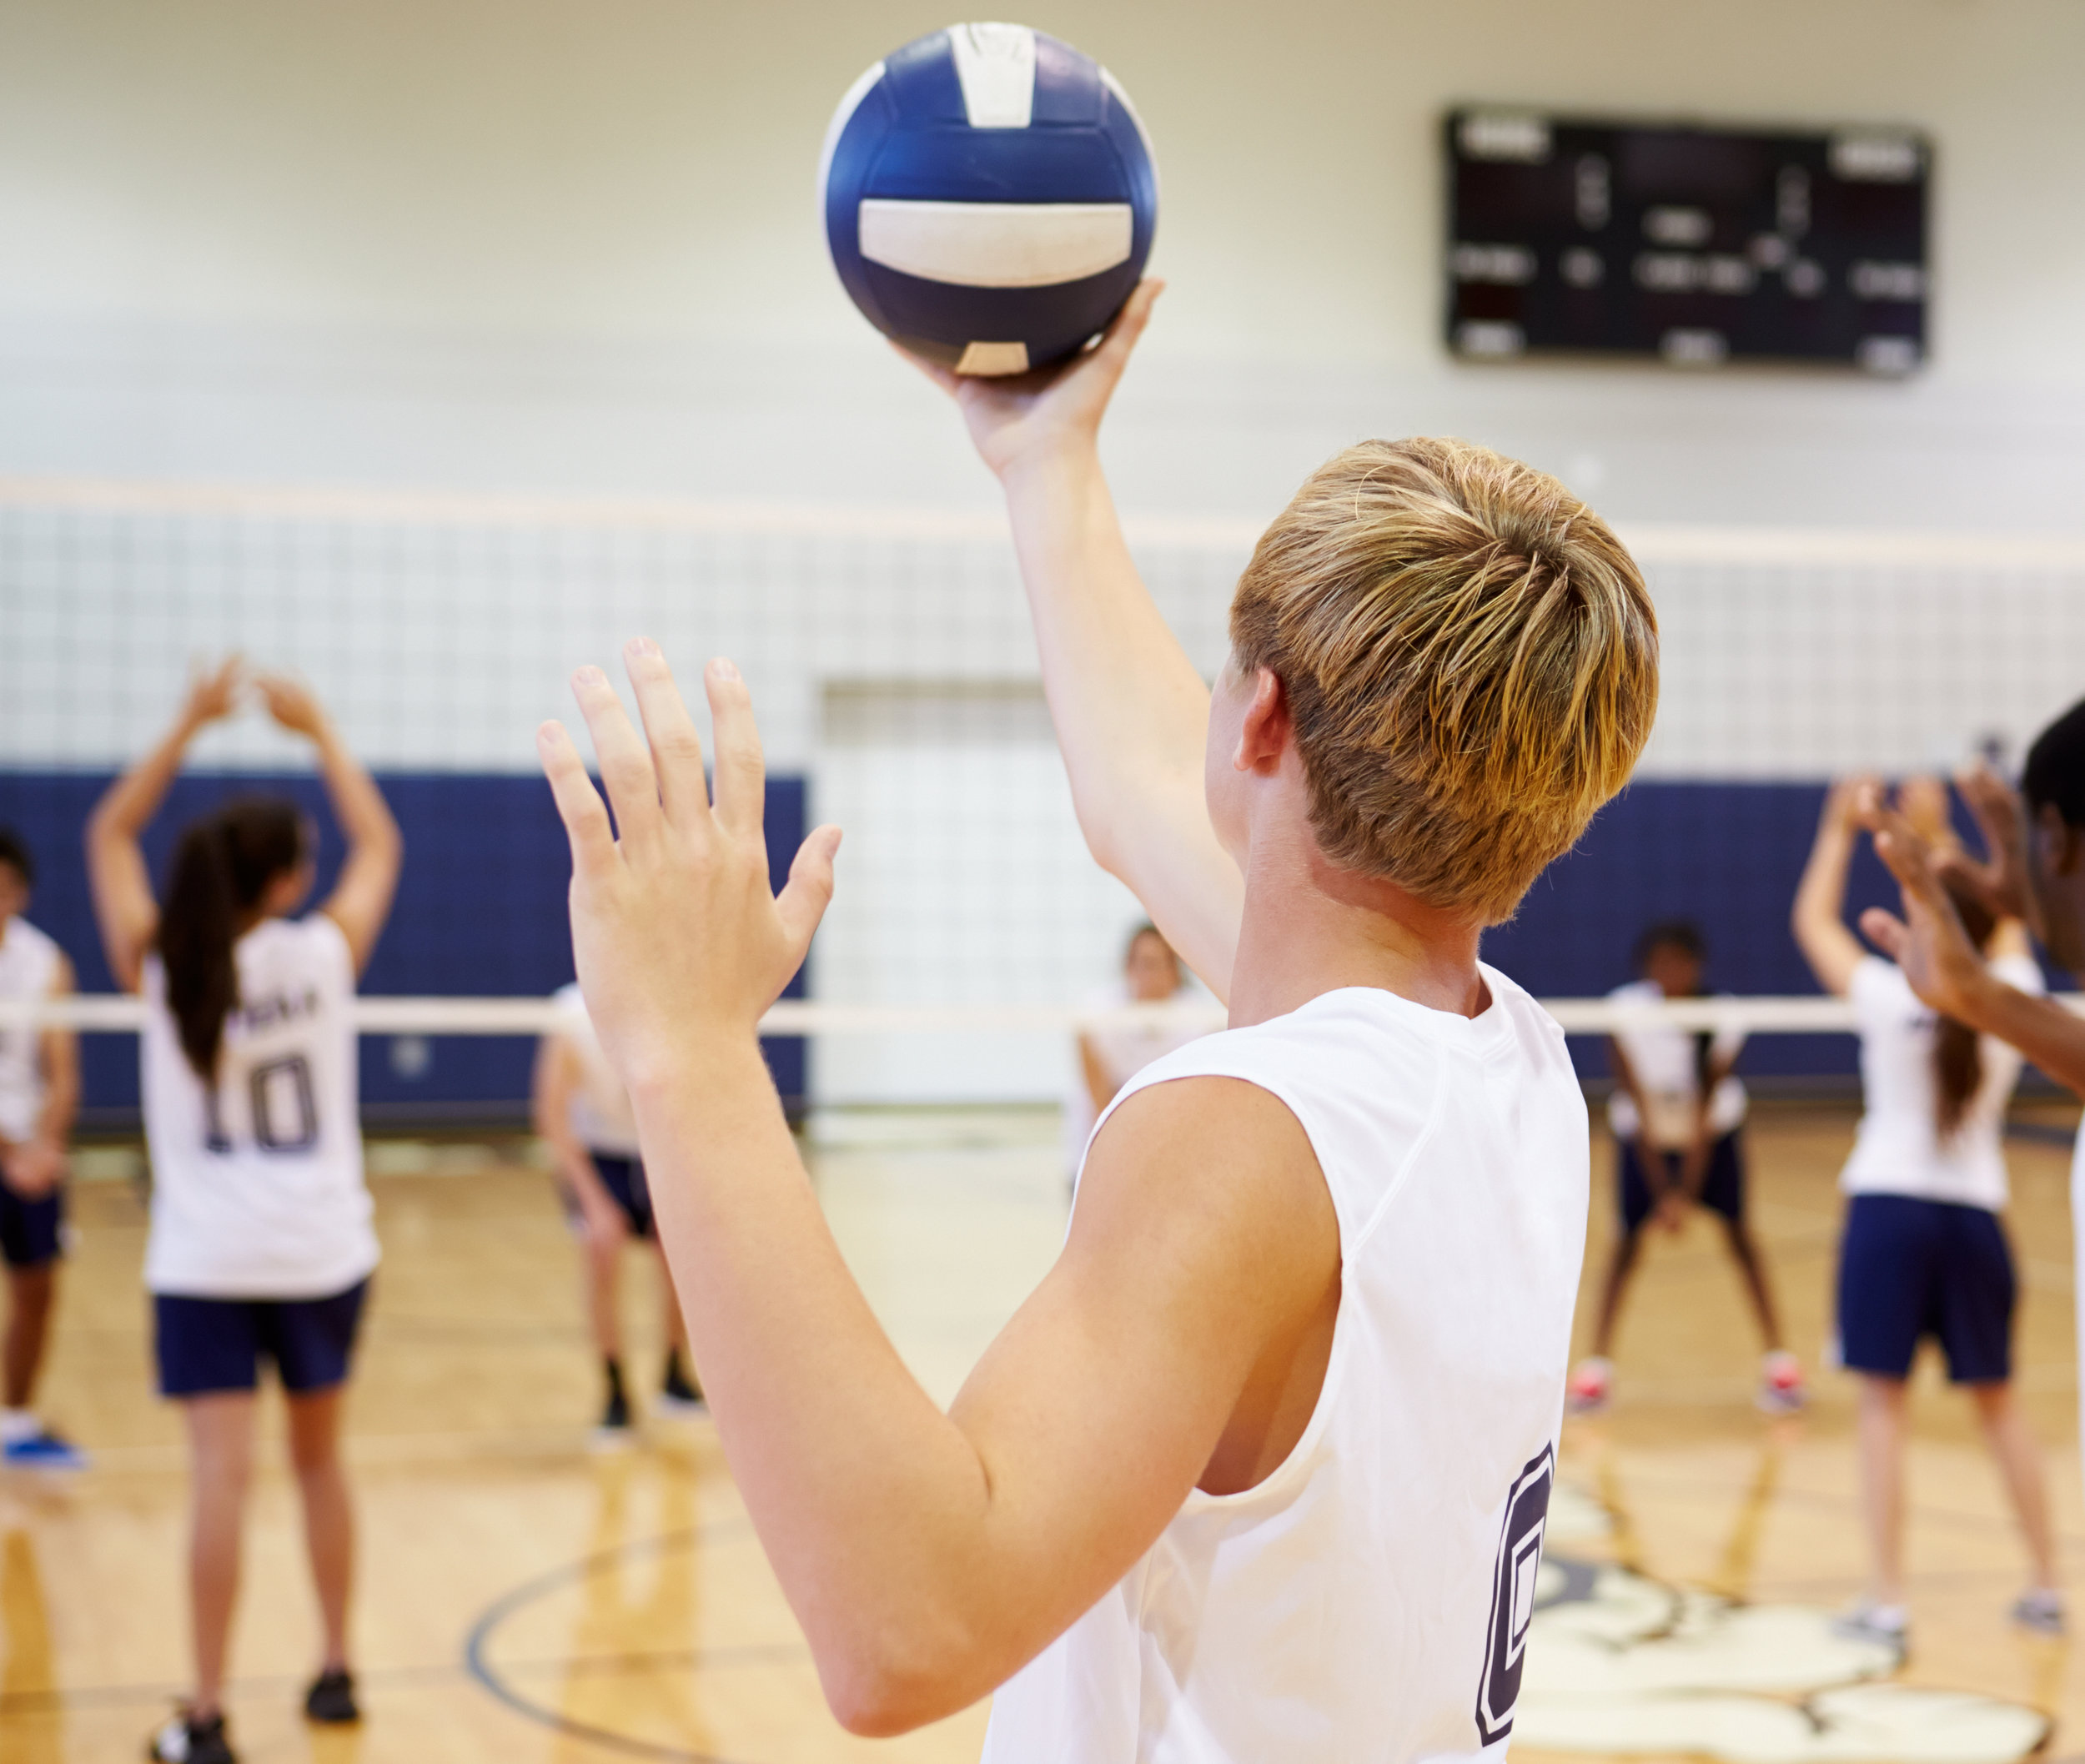 Volleyball at Woodstock Trinity School, a Private Independent Elementary School in Innerkip Ontario Canada.